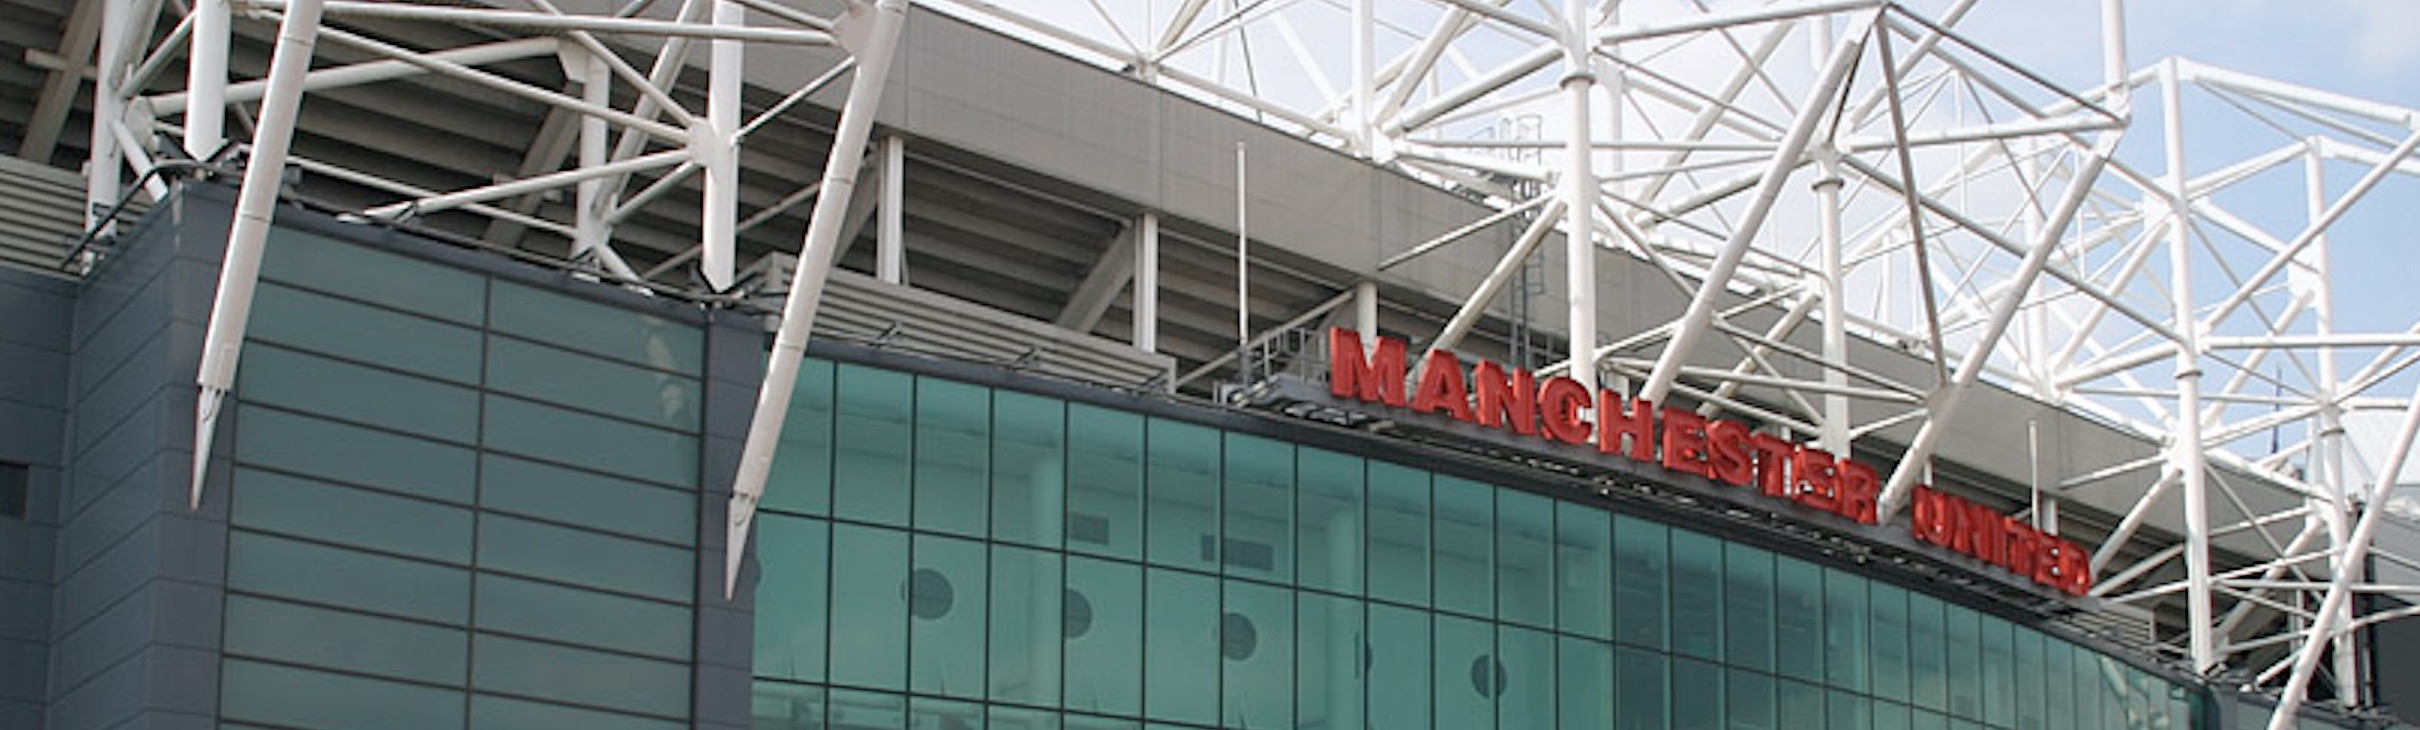 Man United V Newcastle - Daytrip by Coach & Ferry